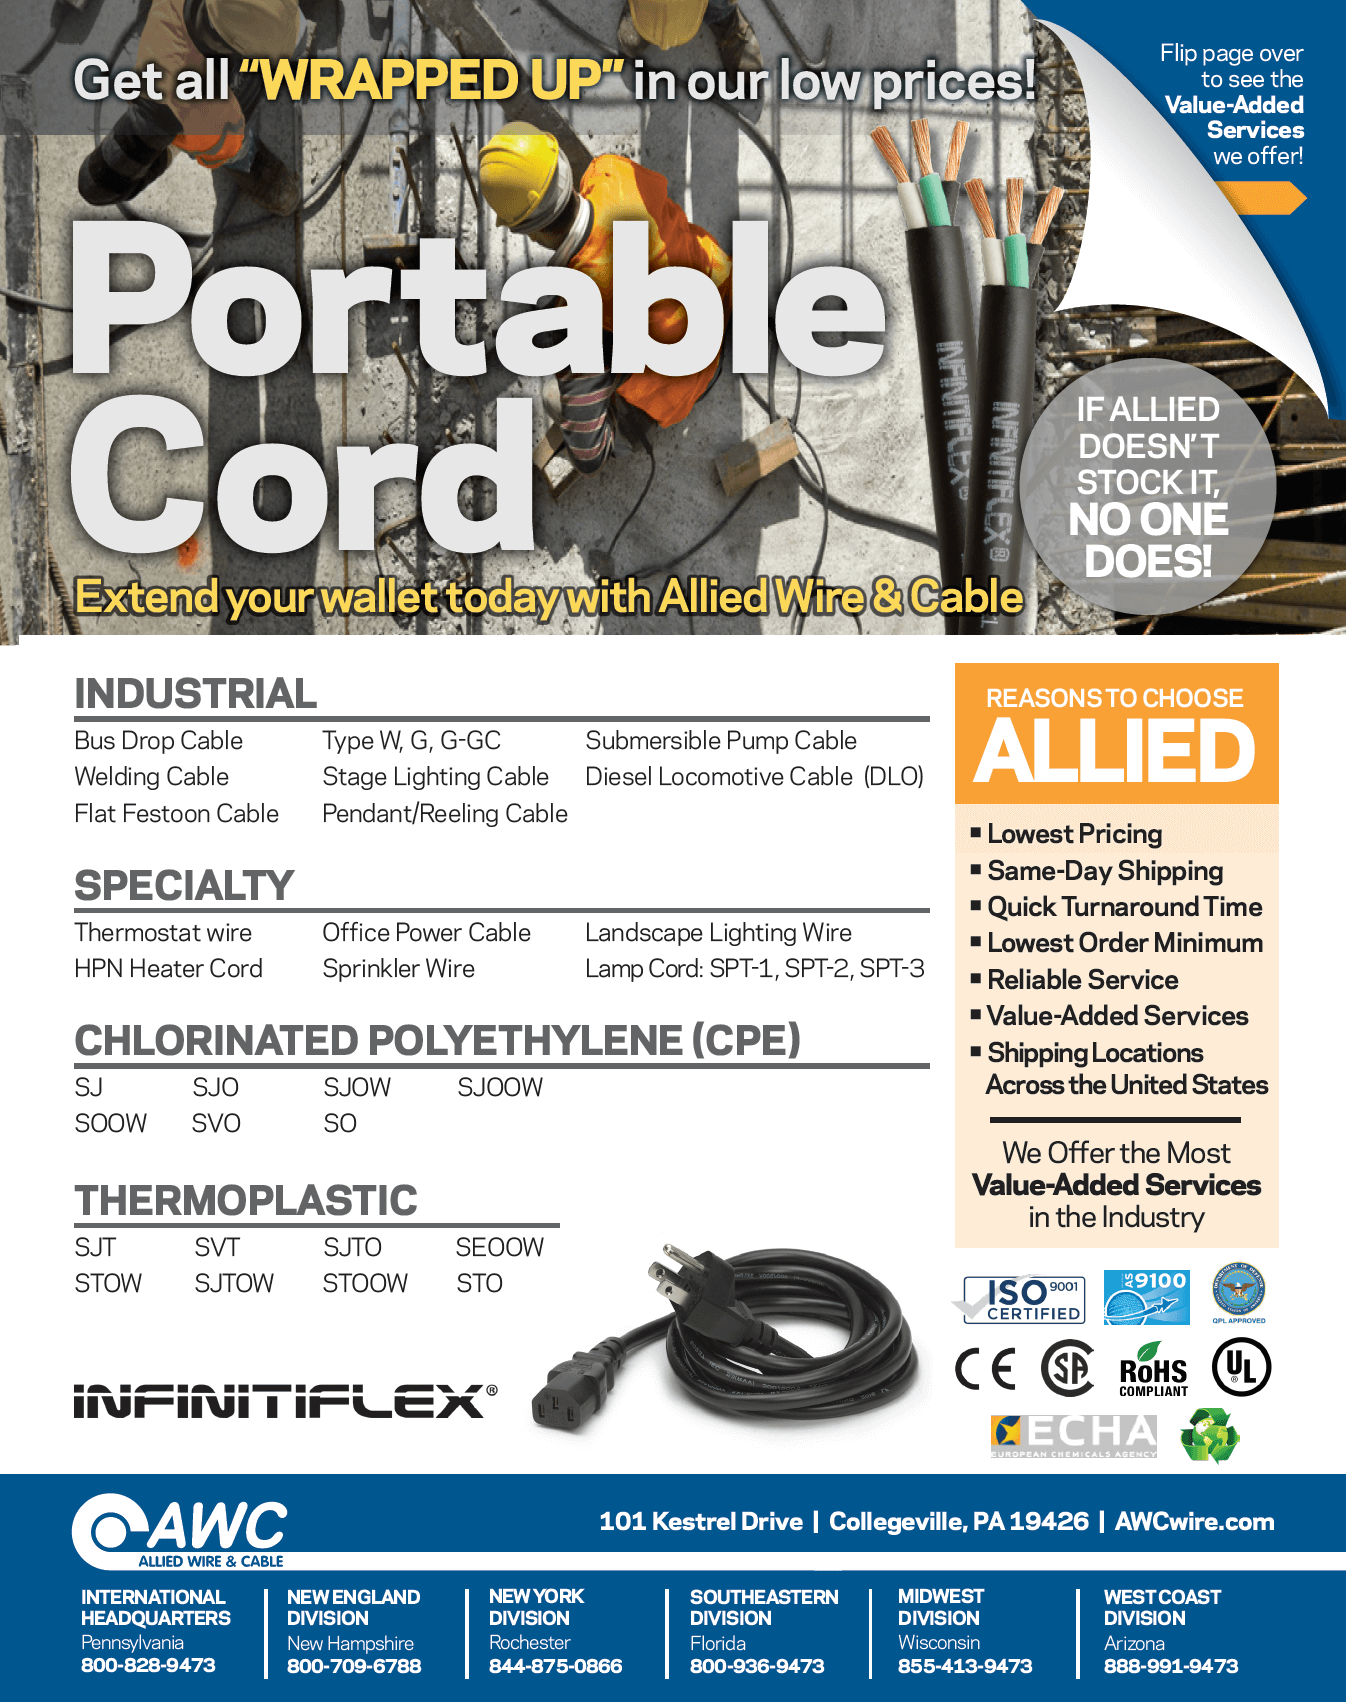 Portable Cord Line Card from Allied Wire & Cable